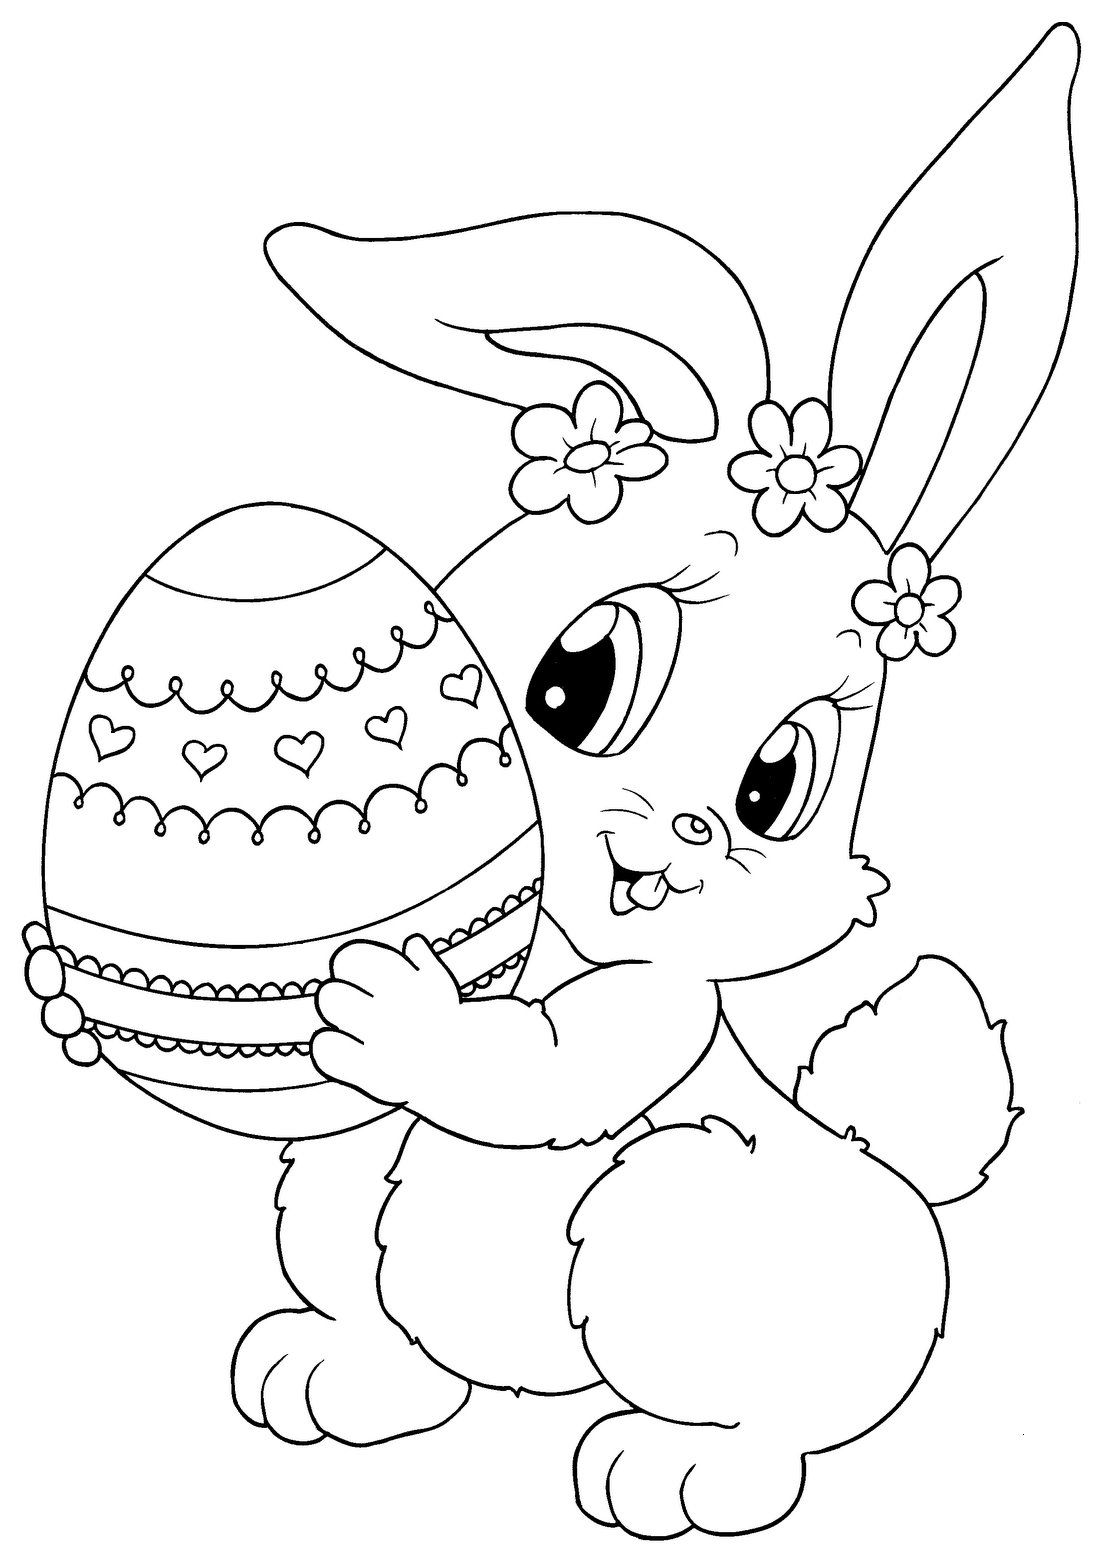 Pin By Anabela Monteiro On Pascoa Coelhos Bunny Coloring Pages Easter Bunny Colouring Easter Printables Free